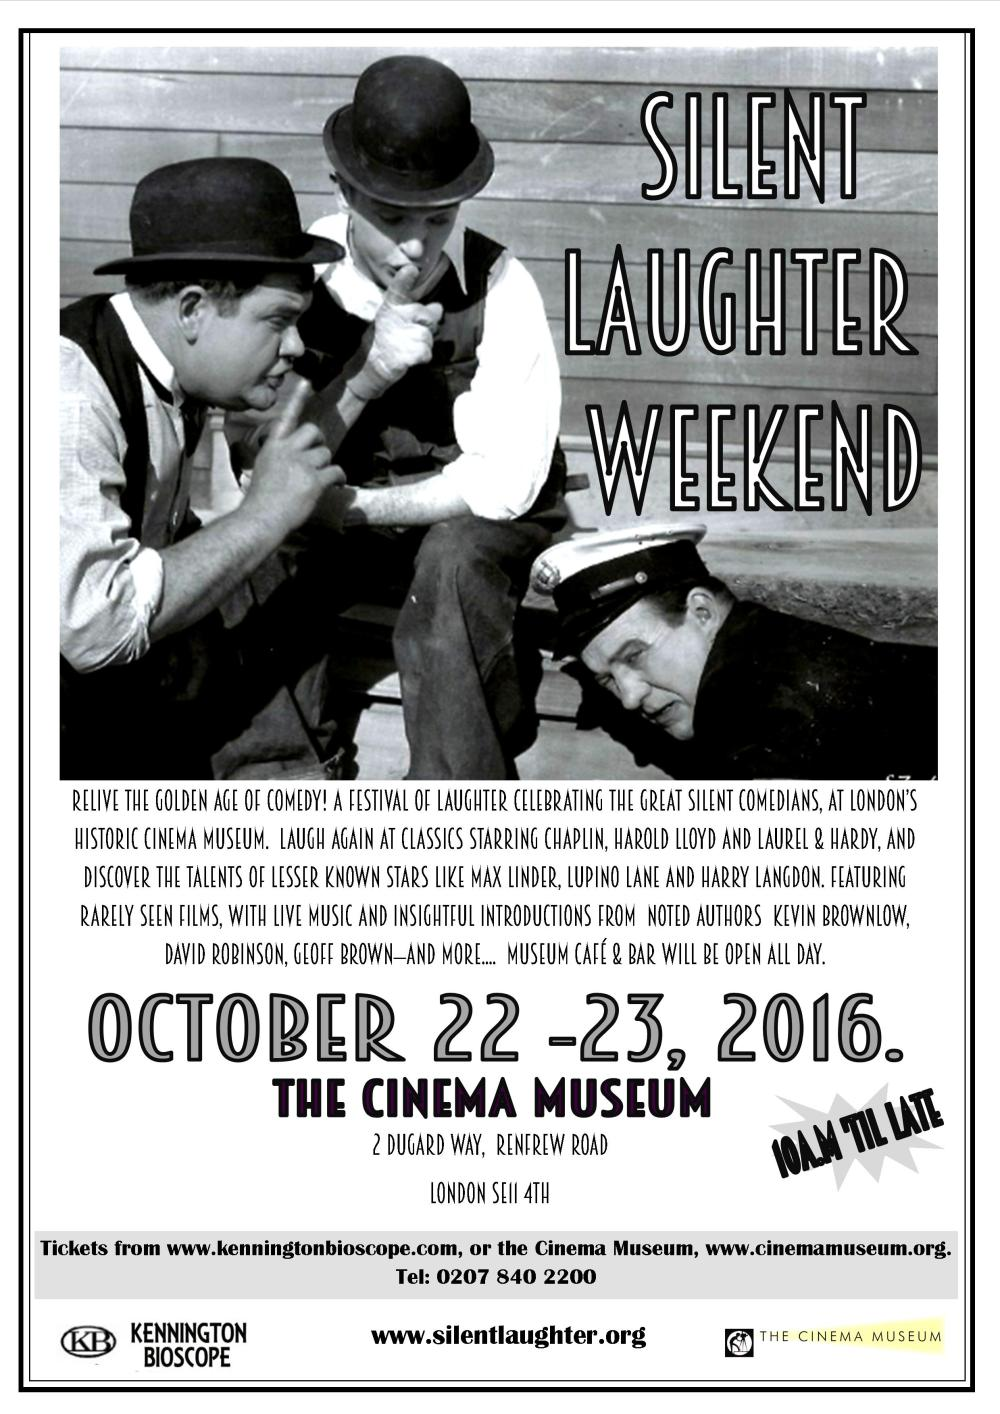 Silent Laughter Weekend